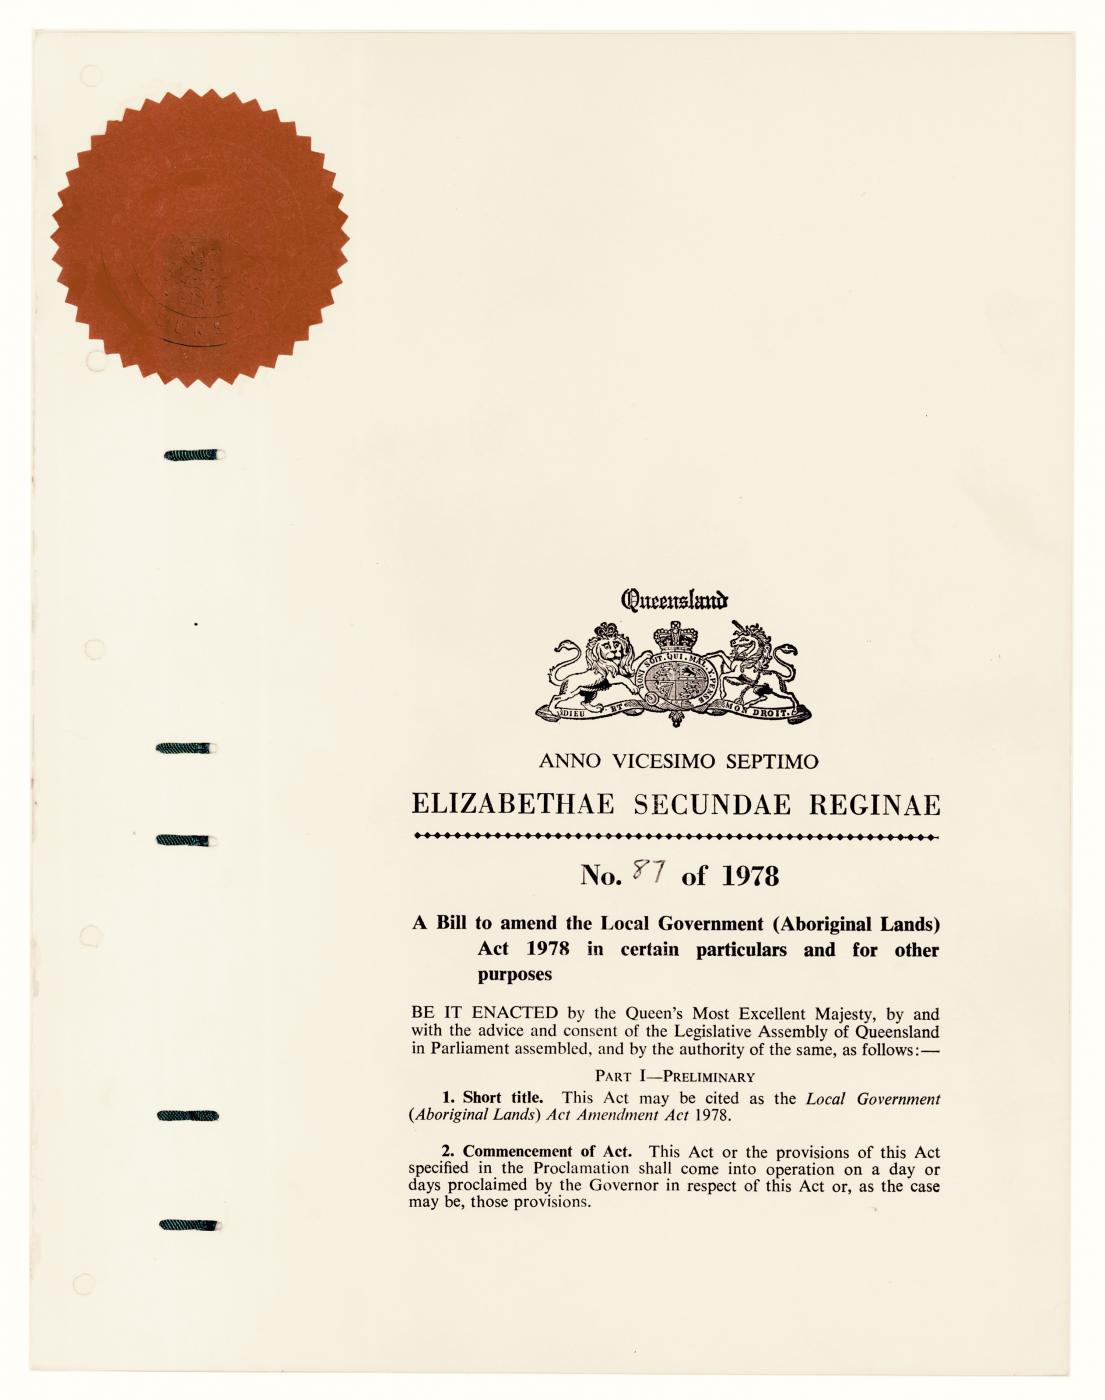 QSA ID 611200: Local Government (Aboriginal Lands) Act Amendment Act 1978